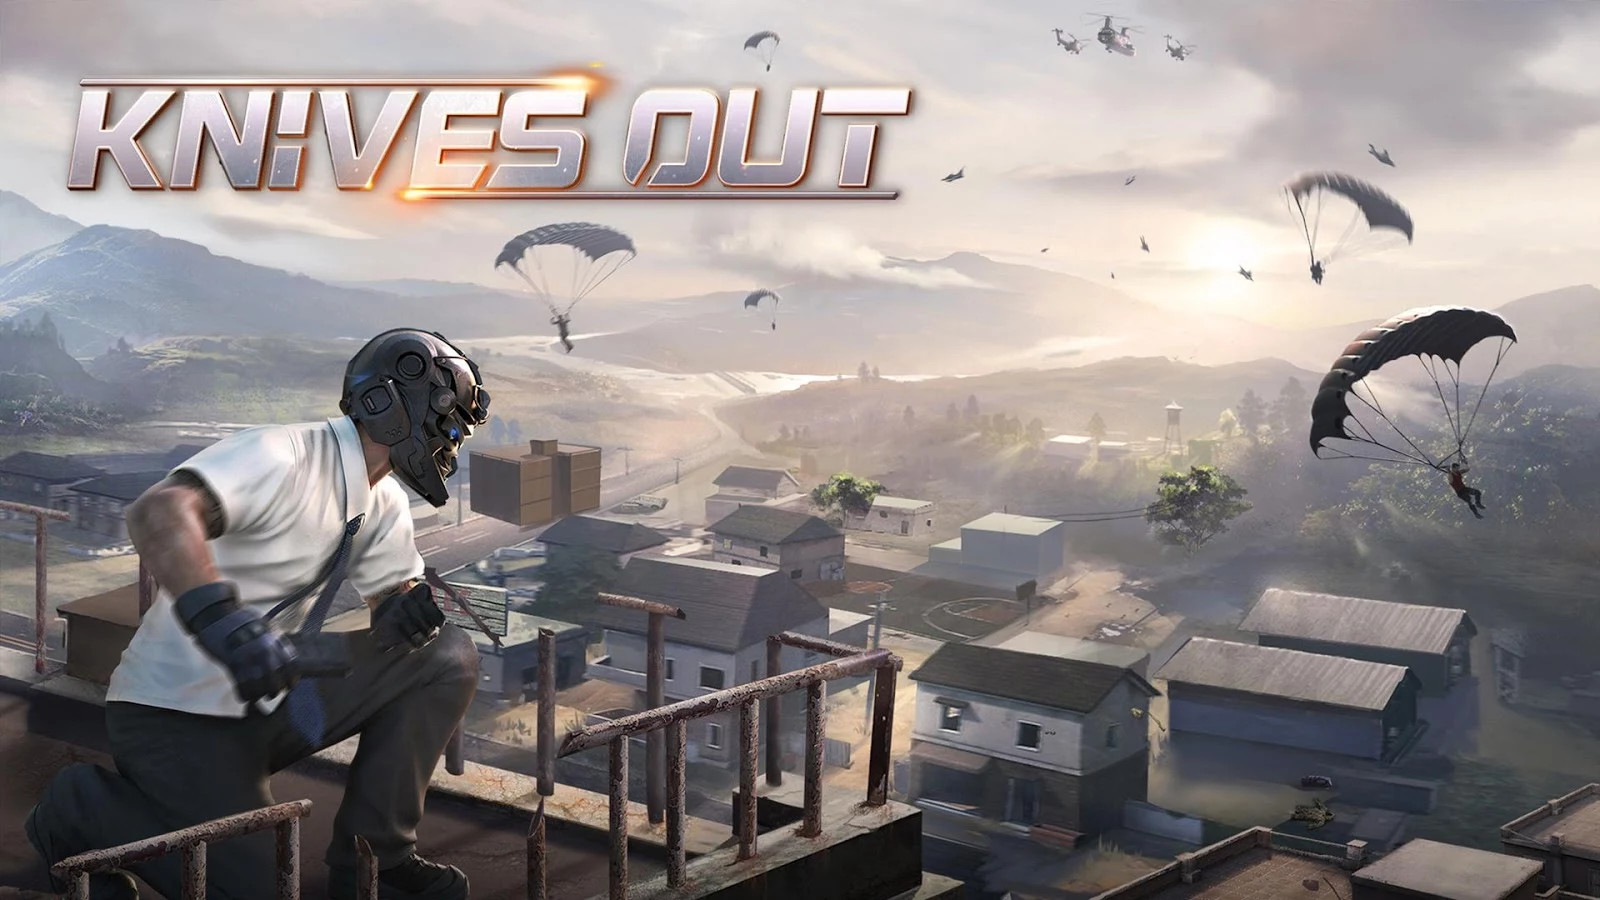 Image currently unavailable. Go to www.hack.generatorgame.com and choose Knives Out image, you will be redirect to Knives Out Generator site.